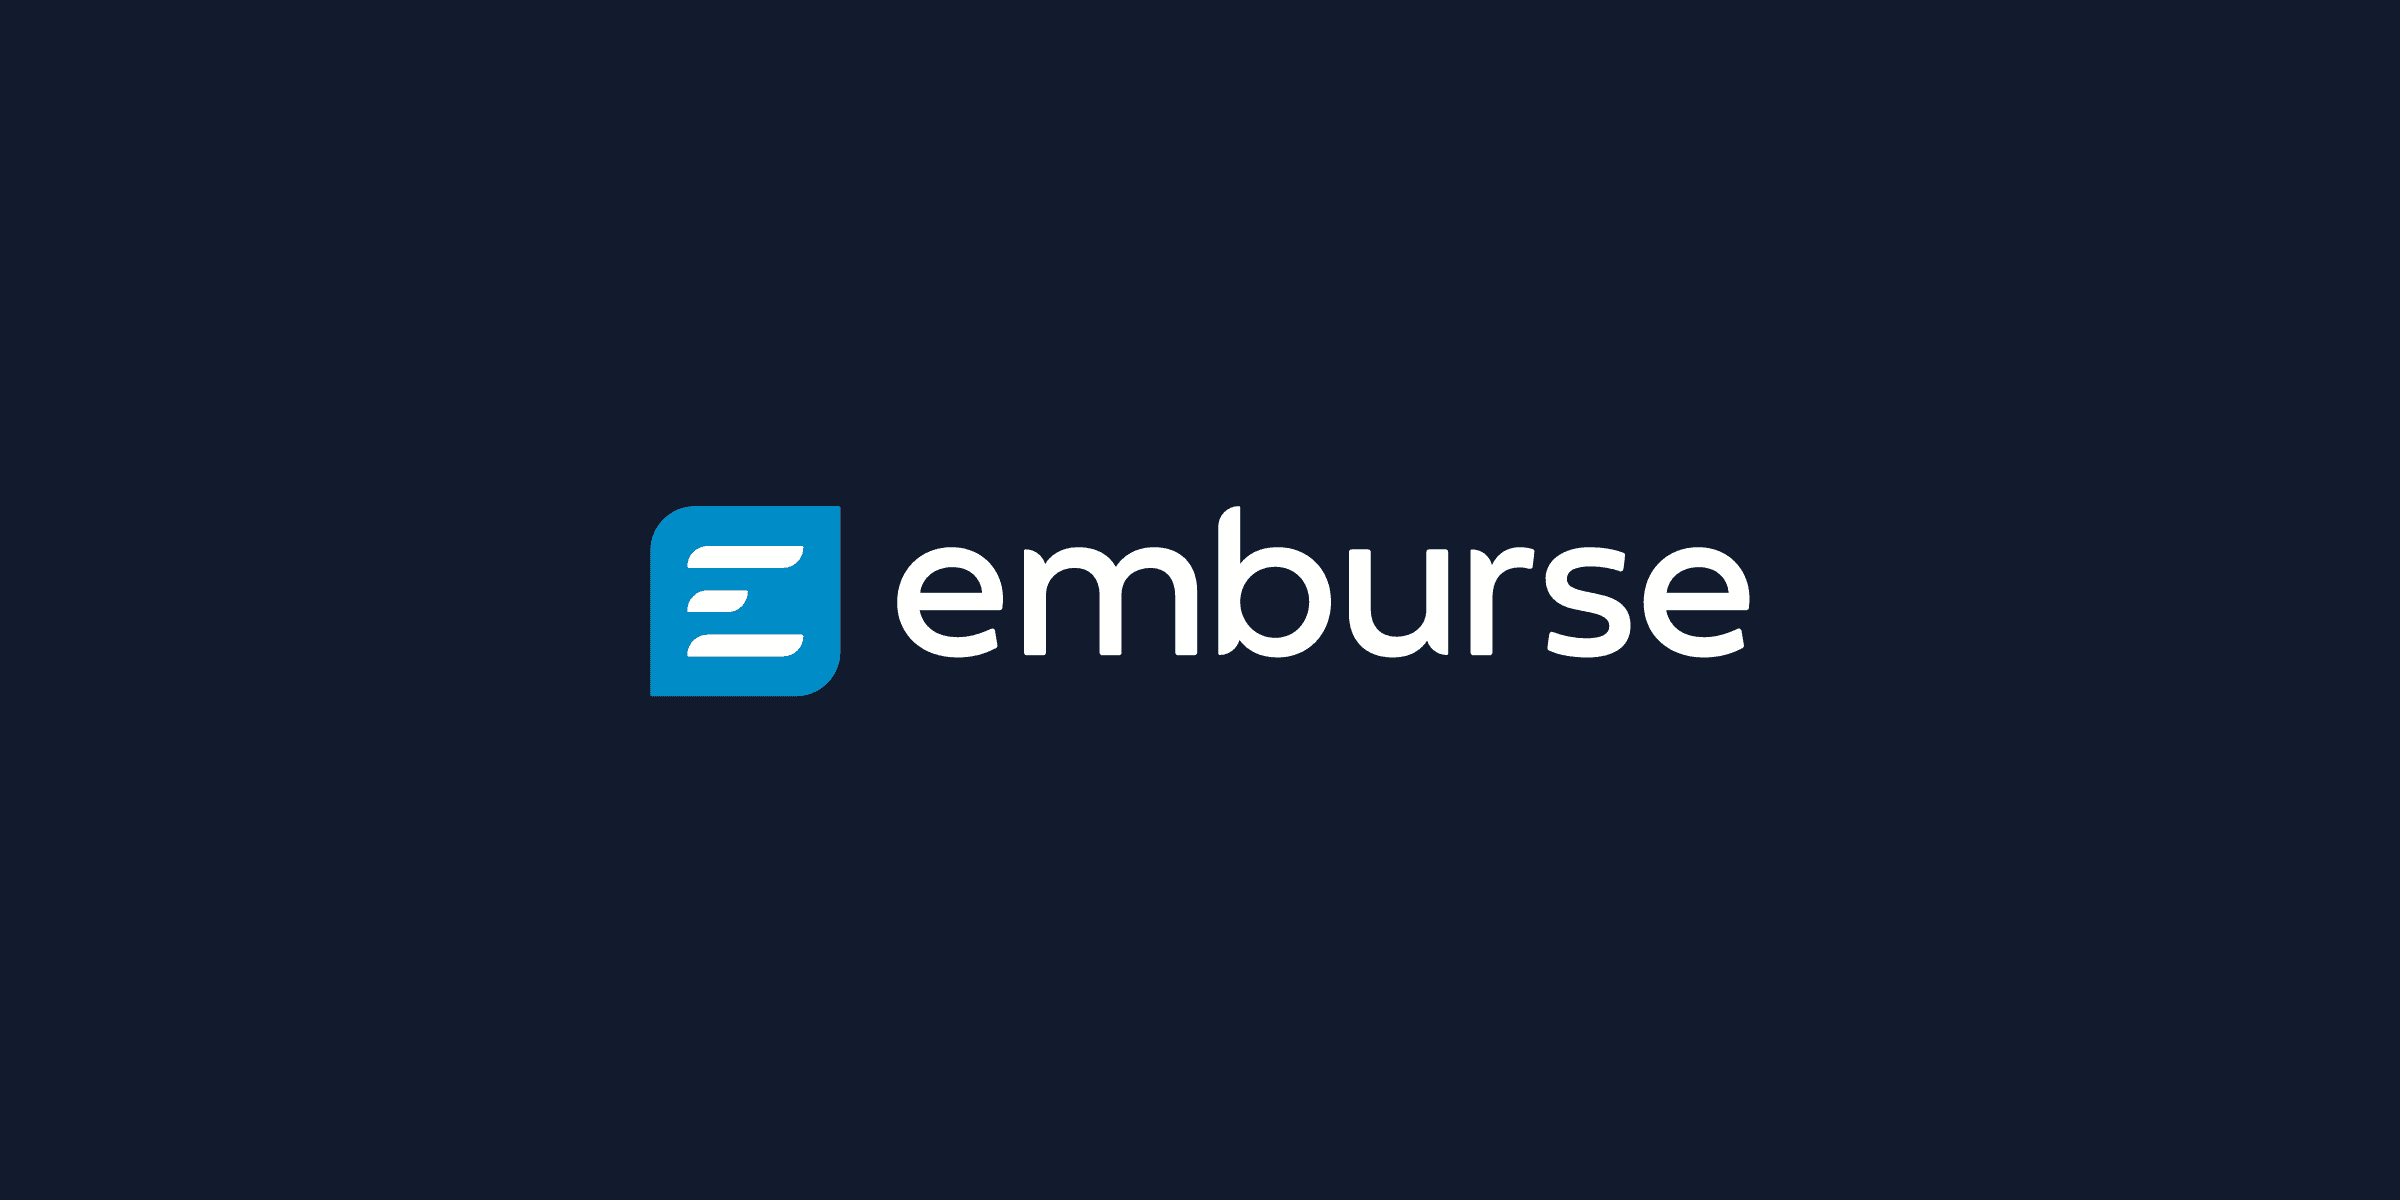 Emburse is born, the new global company that incorporates Abacus, Captio, Certify, Chrome River, Nexonia and Tallie